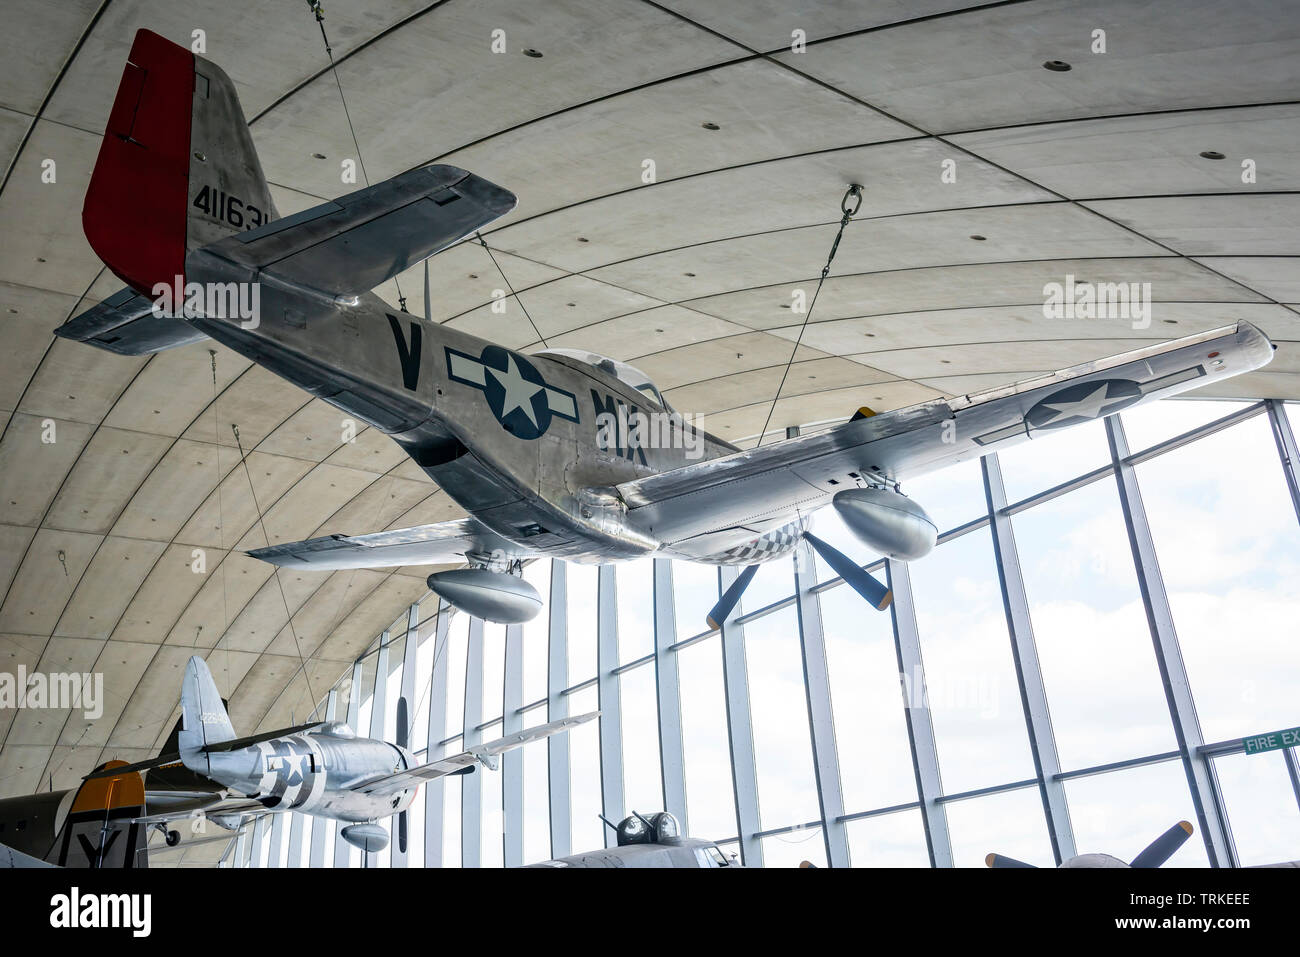 North American Aviation P51 Mustang World War Two fighter aircraft at the Imperial War Museum, Duxford, Cambridgeshire, UK - Stock Image